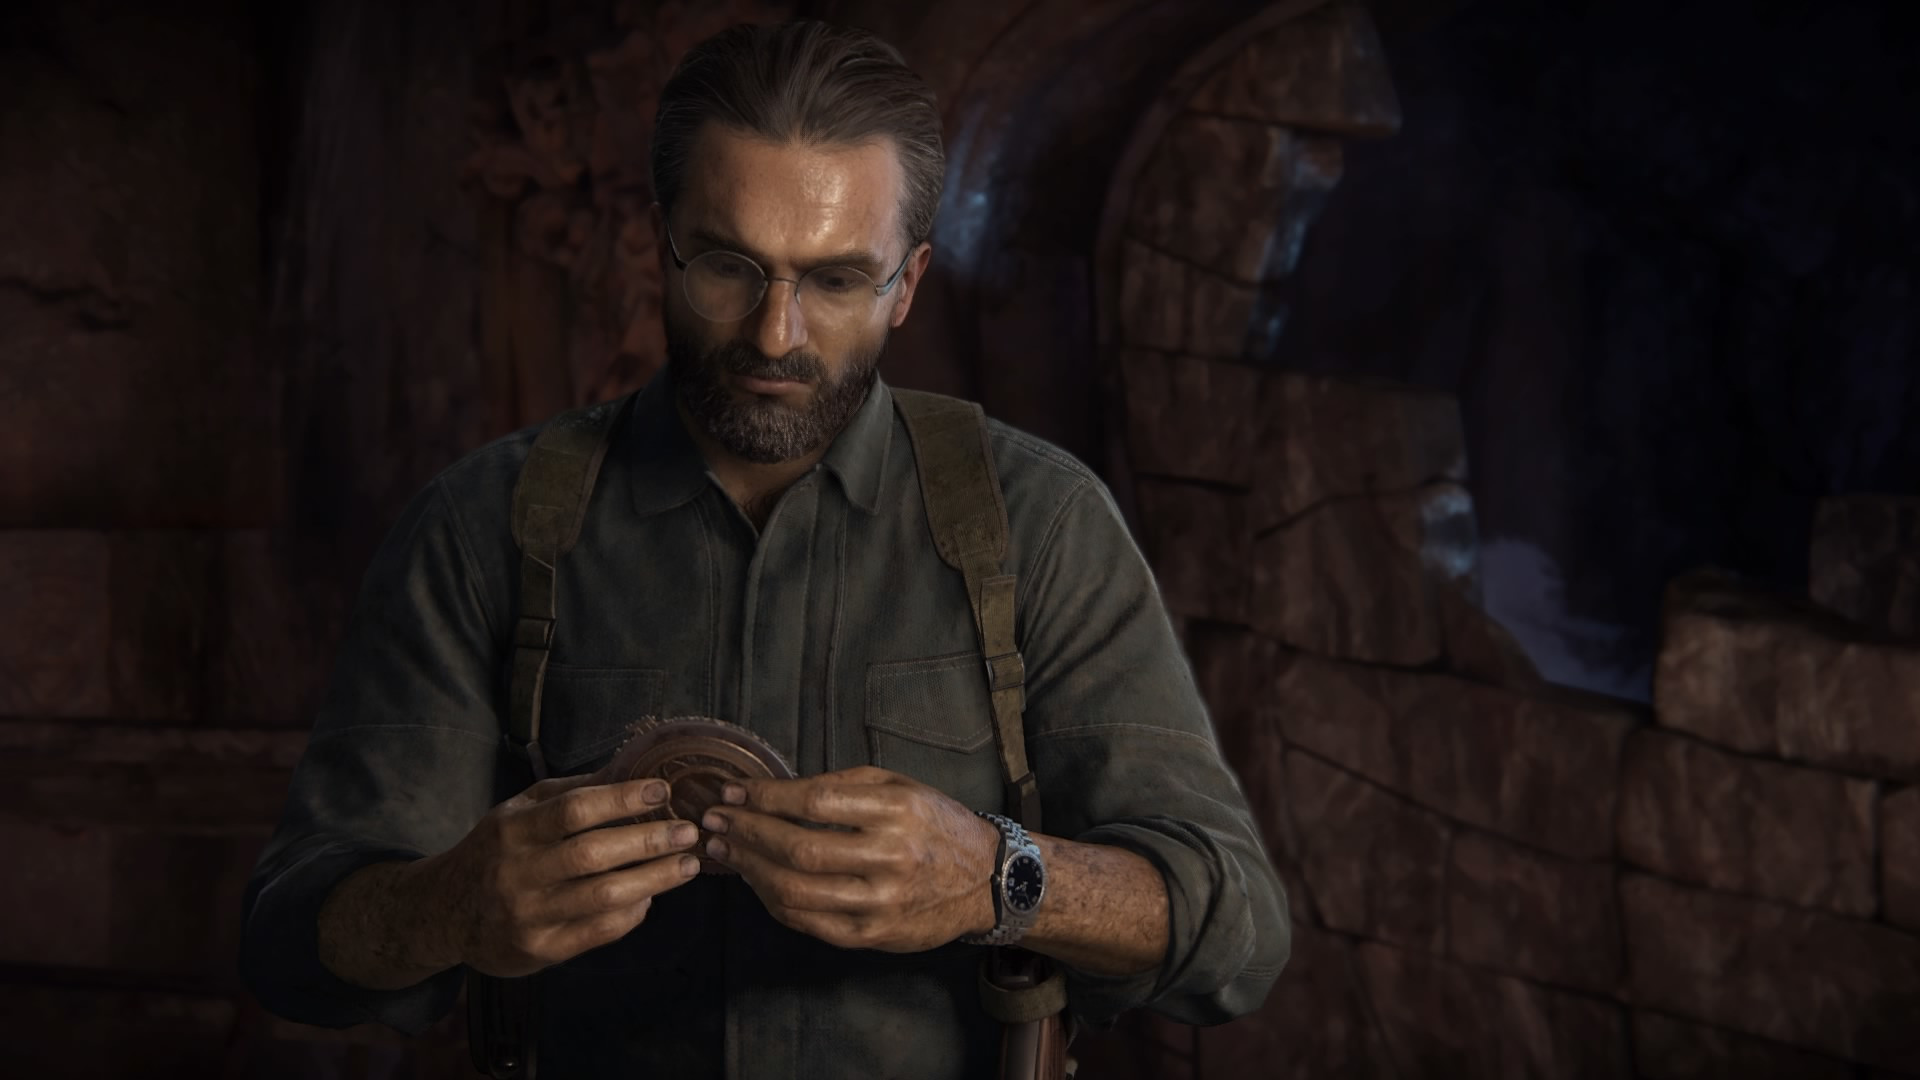 Asav Ennemi dans Uncharted The Lost Legacy